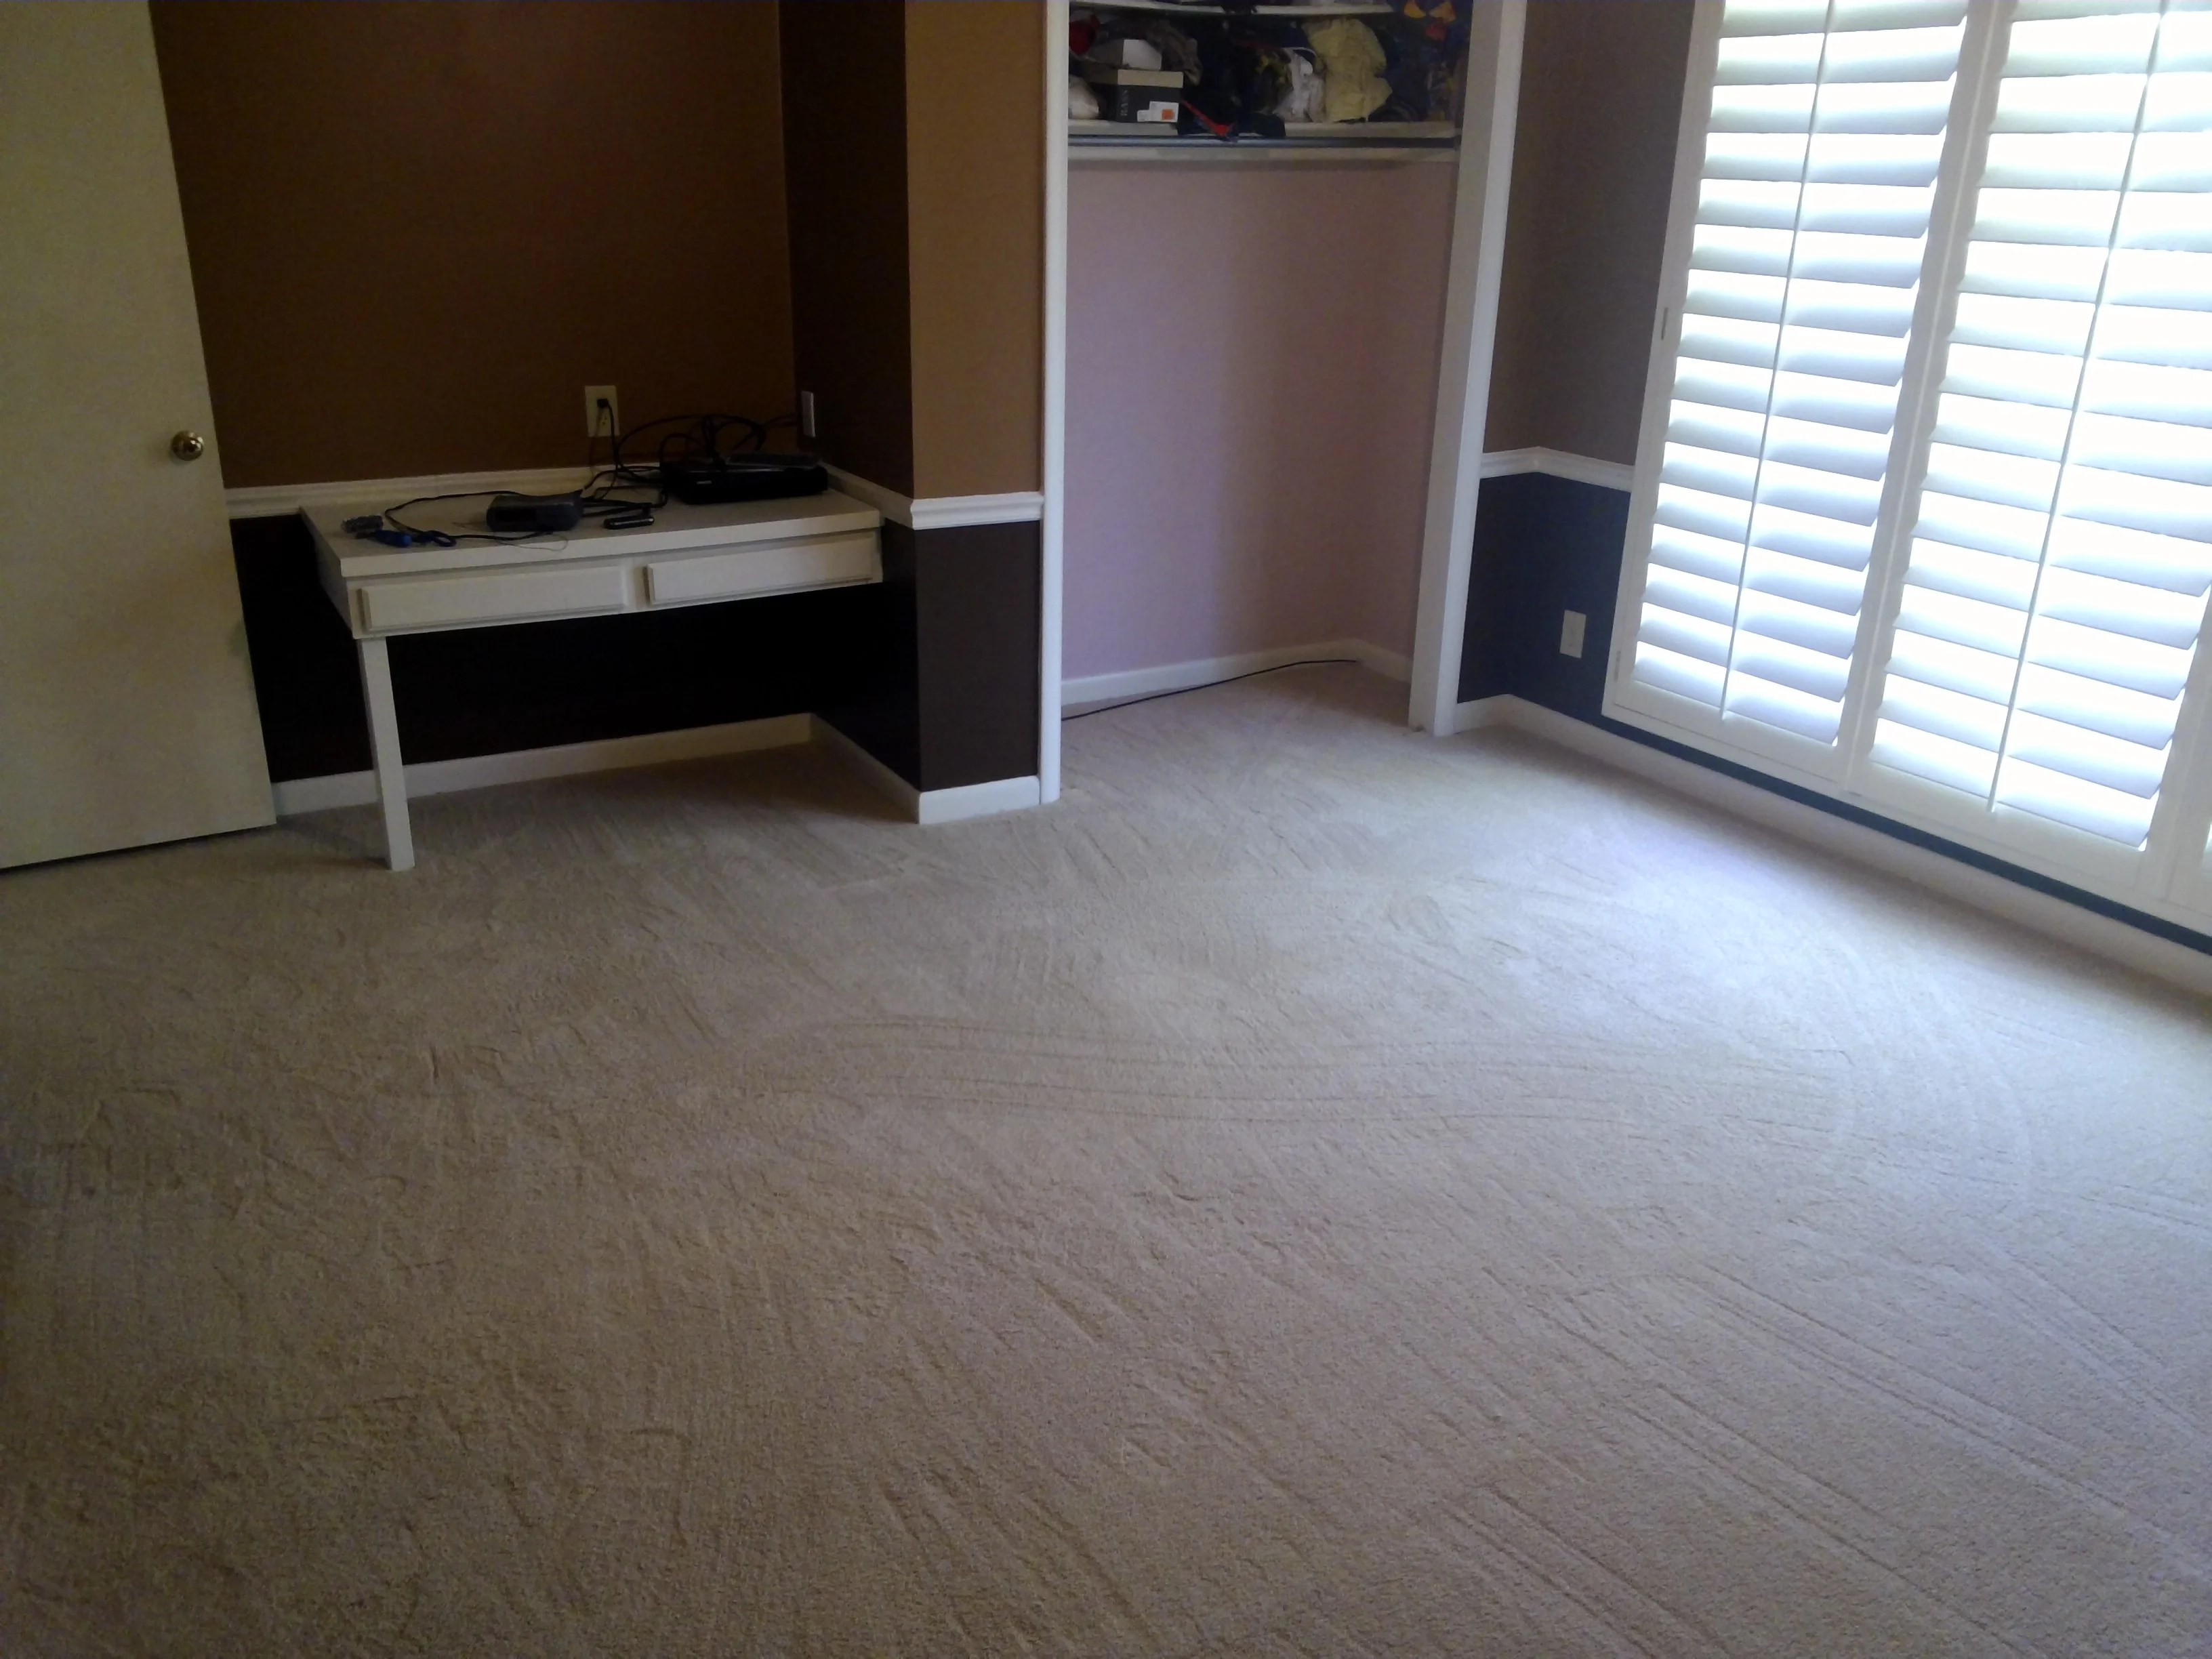 Common Carpet Cleaning  Shampooing Mistakes  HomeAdvisor